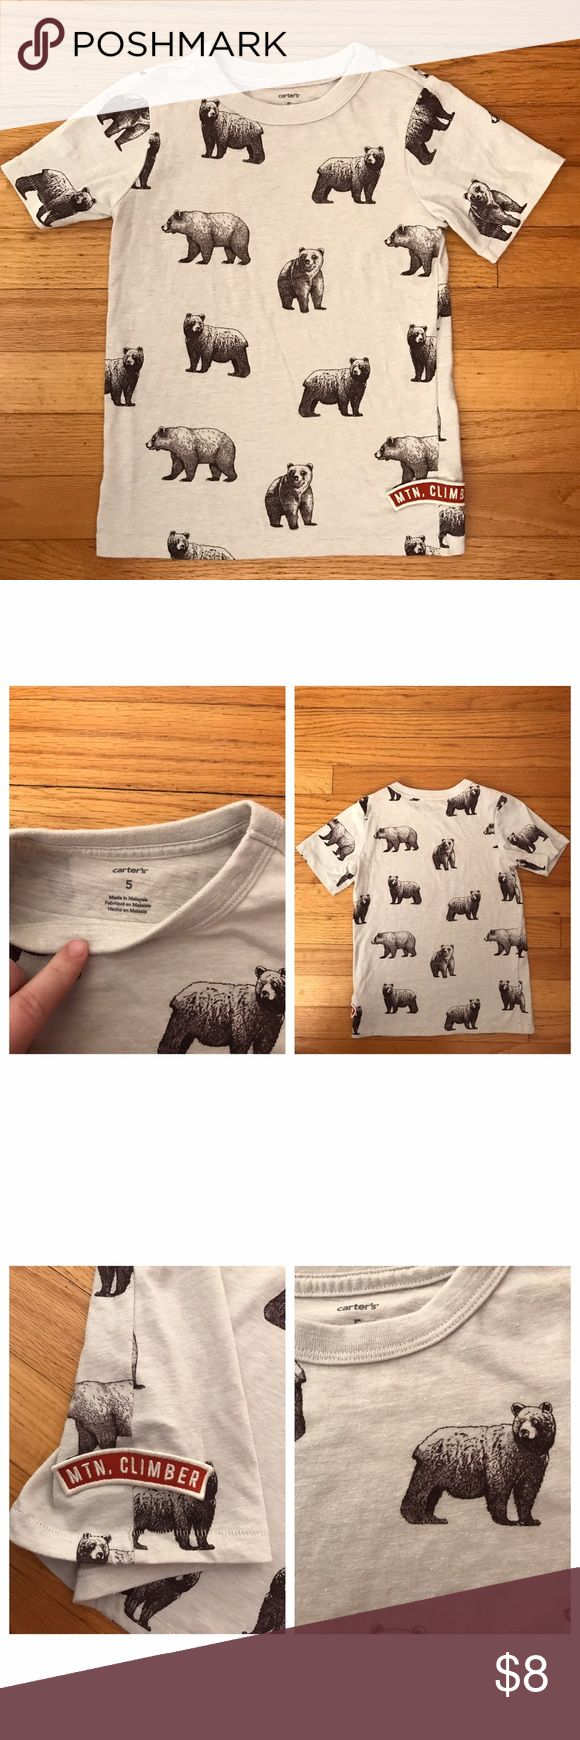 🐻carter's bear print shirt size 5 boys Carter's Bear Print Short sleeve Shirt  Size 5 Boys  Details:  Short Sleeve Shirt  Size 5  CUTE MTN. Climber Patch on Side of Shirt-see Pix  Bear Print all over and back of shirt  Only worn to school 2 or 3 times at the most  **Please note: The fabric has a Pile(?) Look to it, I bought it this way at the carter's store and they were all like it, It's just the way the fabric is blended. See last pic of close up Very lightly worn as only worn to school…